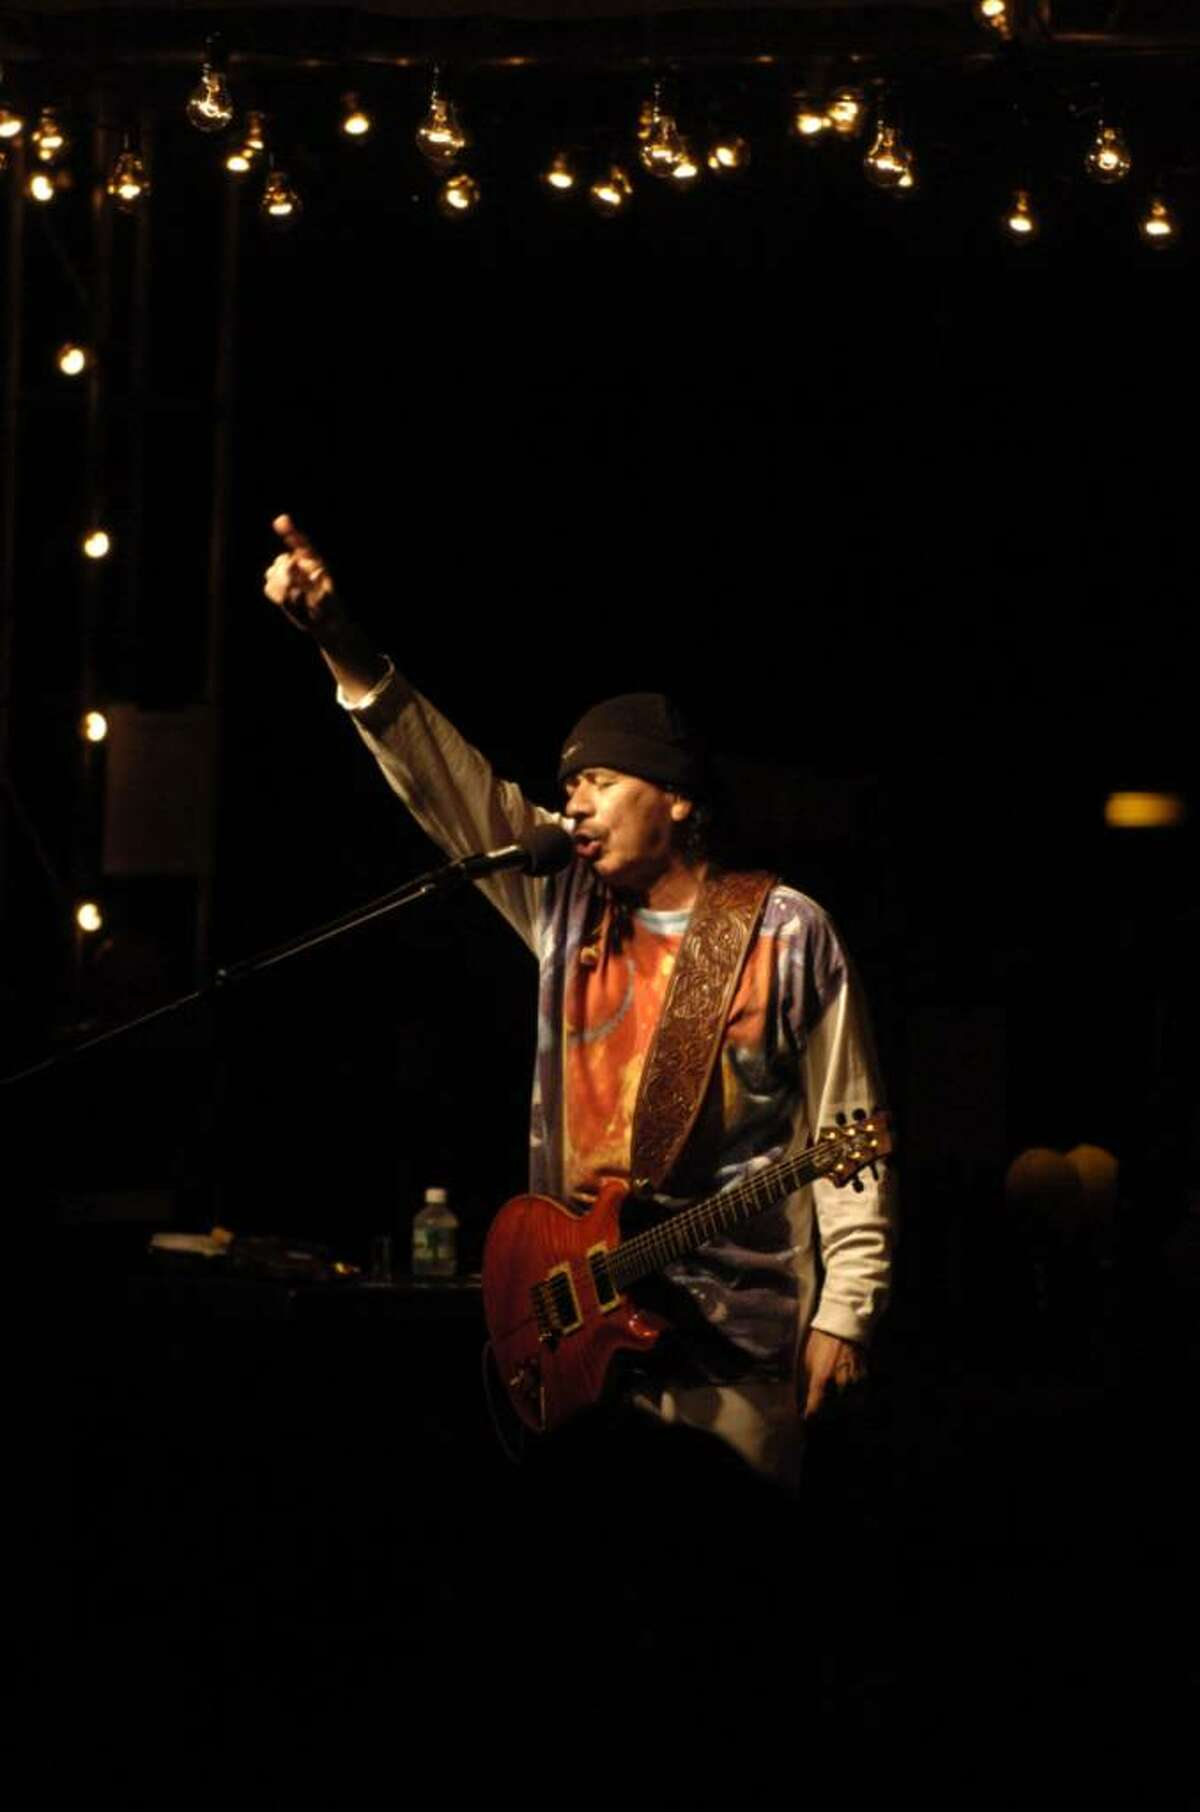 Carlos Santana performs during the annual China Care benefit for Chinese orphans at Belle Haven Club in Greenwich in 2005.